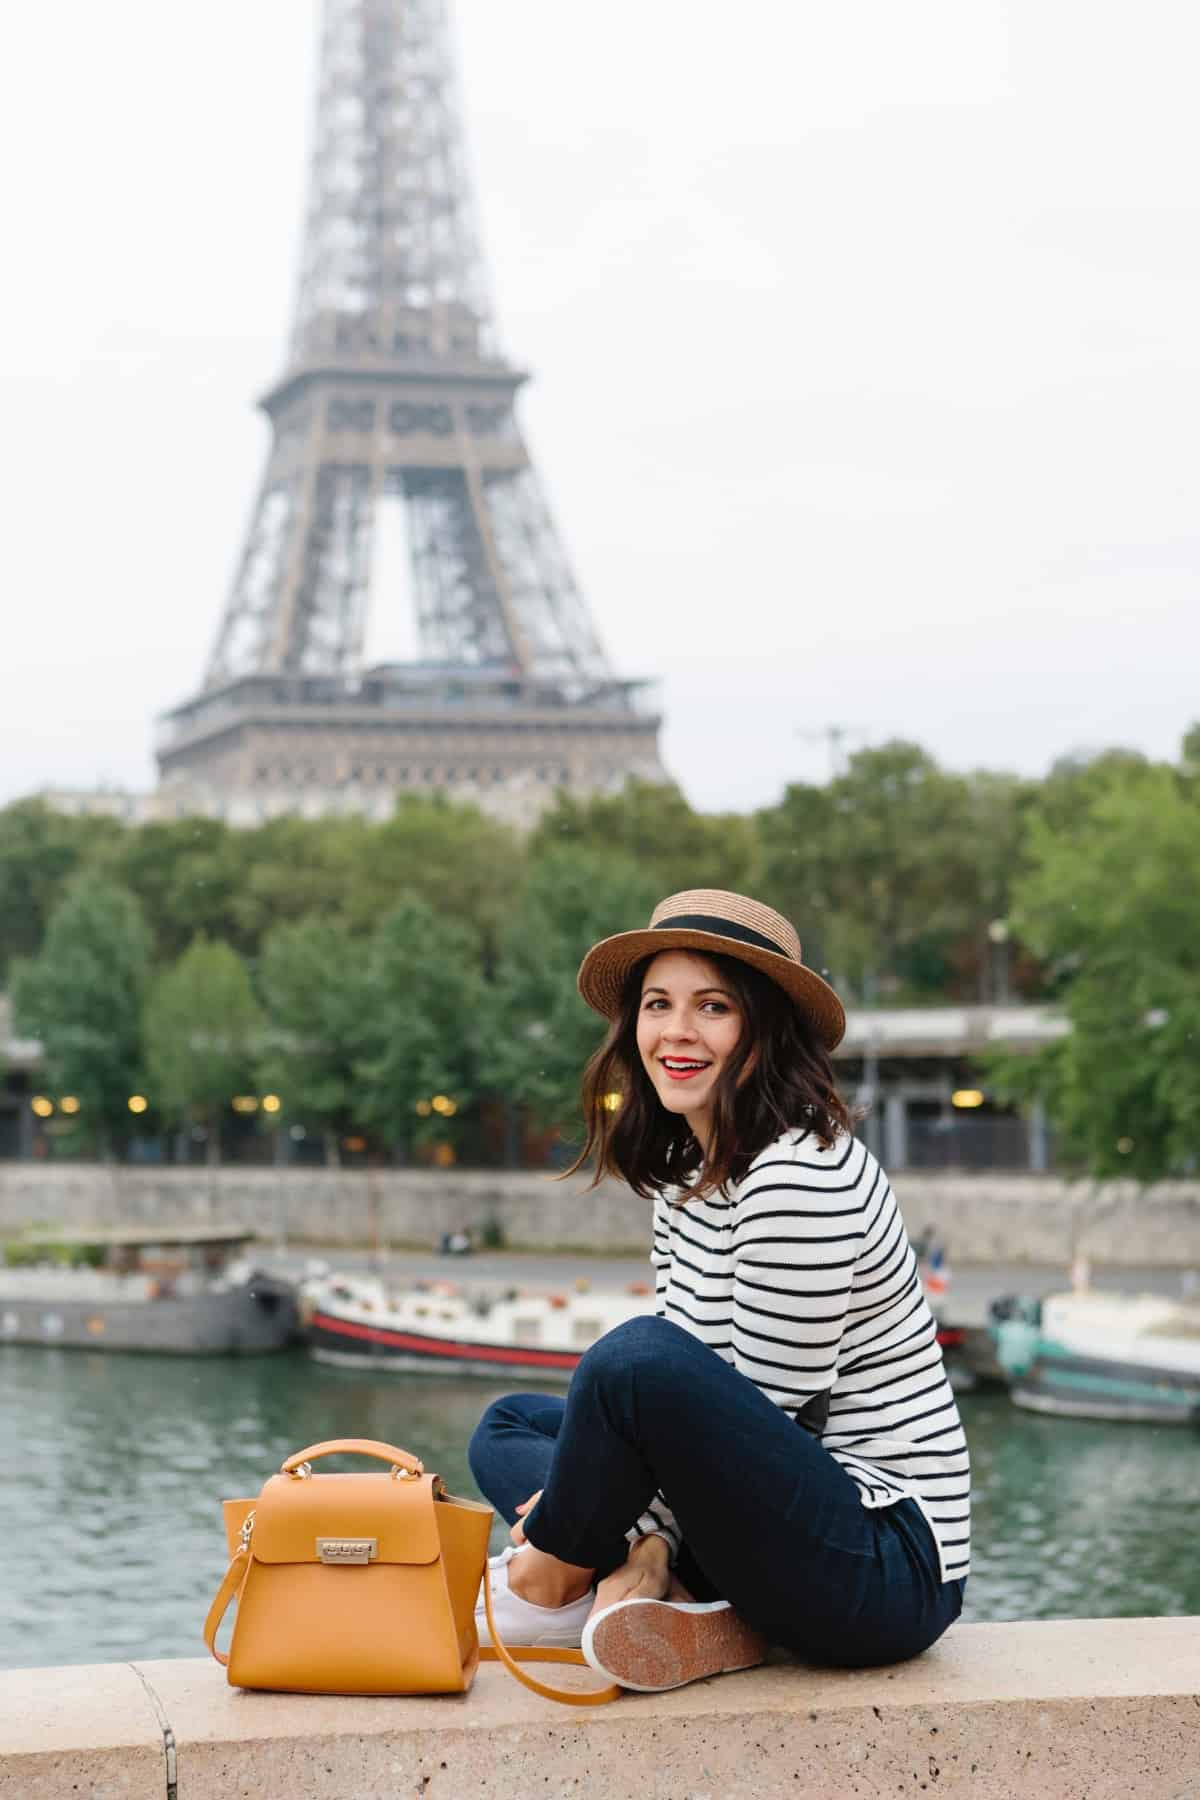 Anastasia-Eiffel Tower photo ideas, outfit ideas for Paris - My Style Vita @mystylevita Guendel